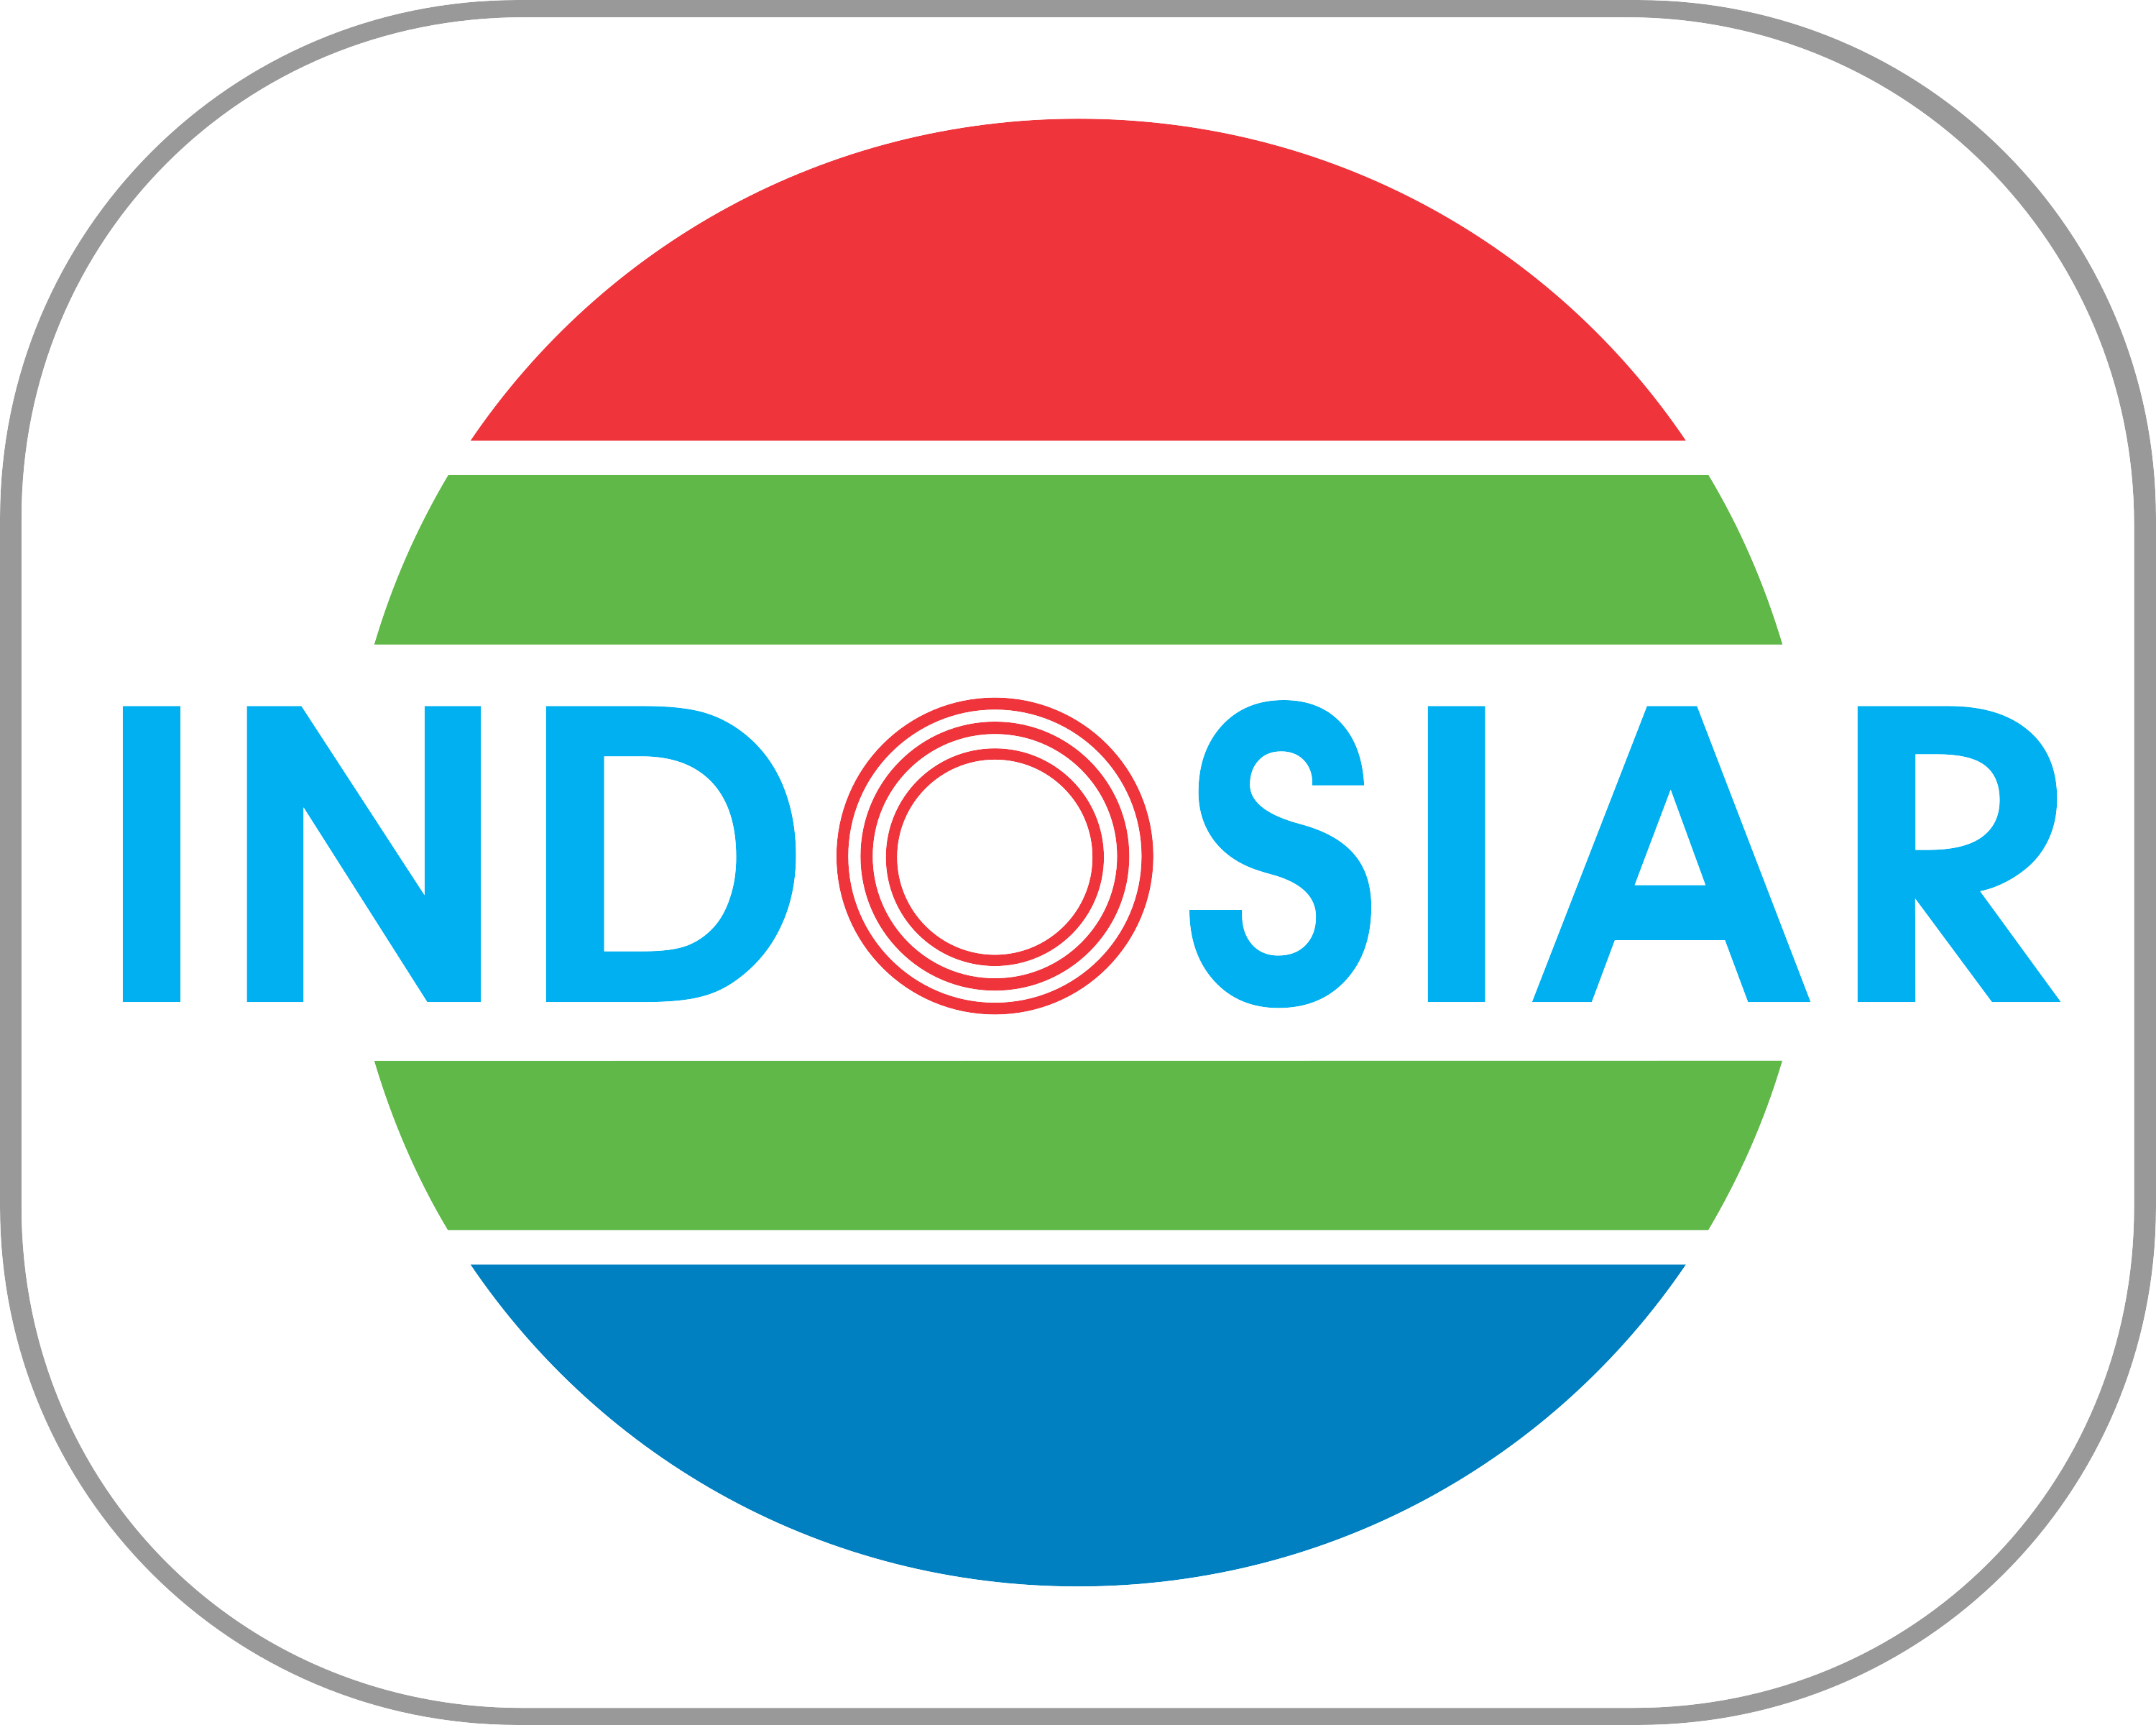 file indosiar logo png wikimedia commons https commons wikimedia org wiki file indosiar logo png